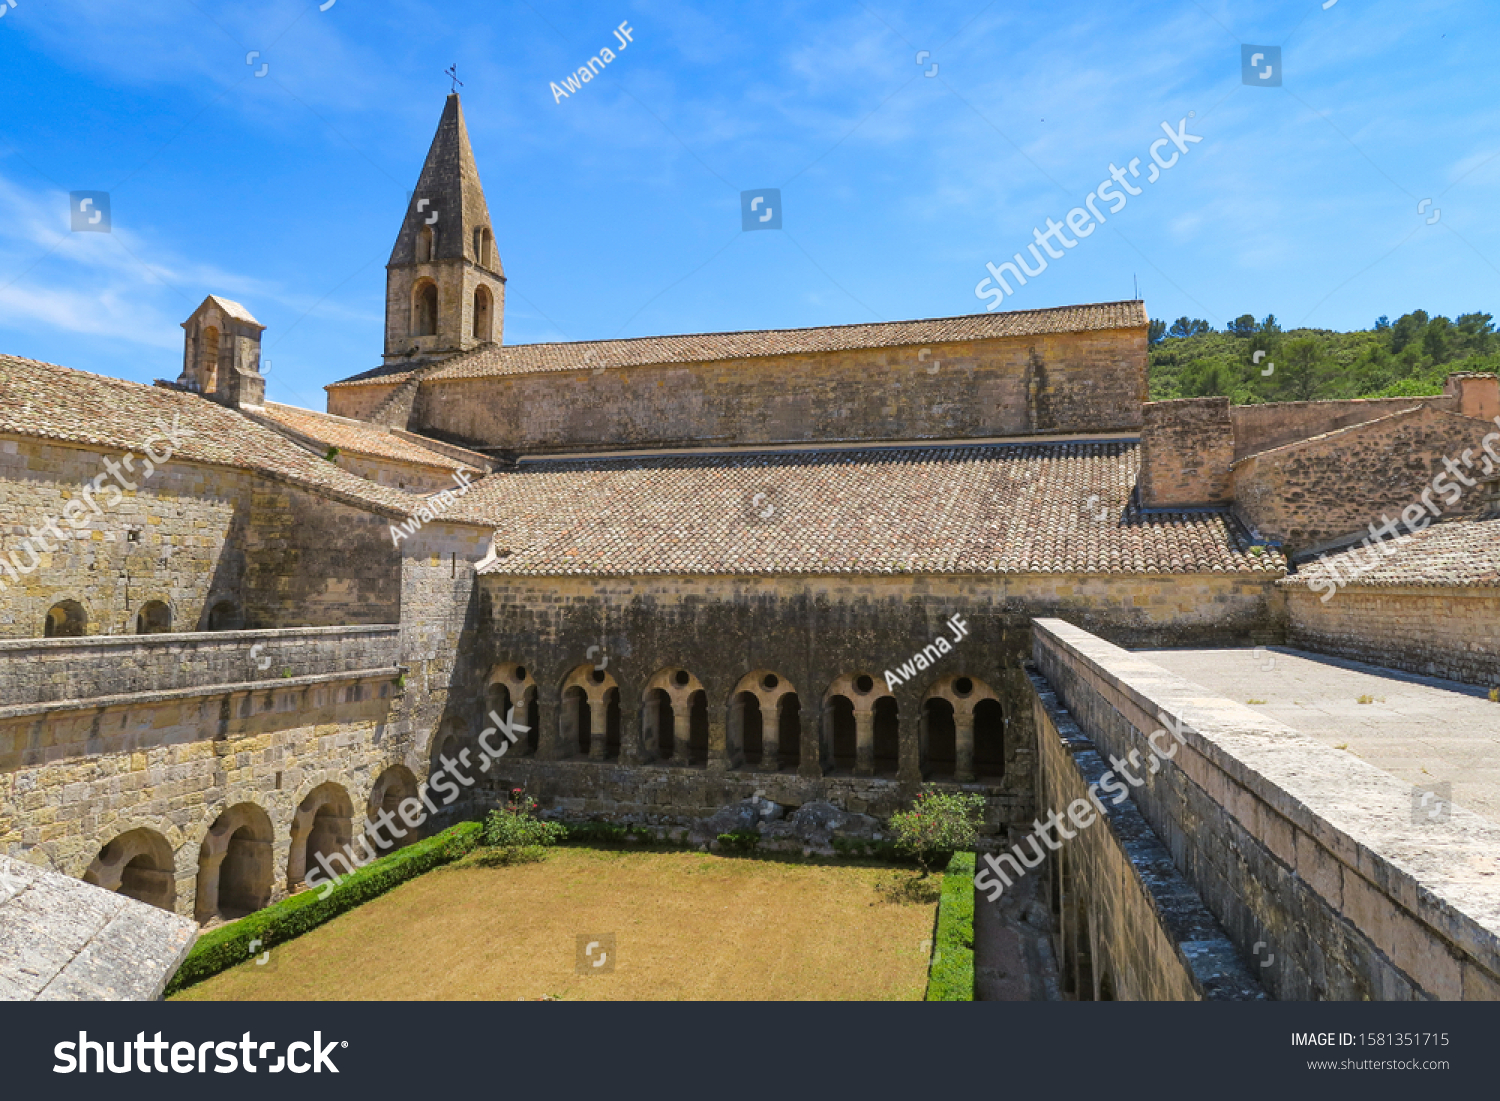 stock-photo-le-thoronet-france-july-view